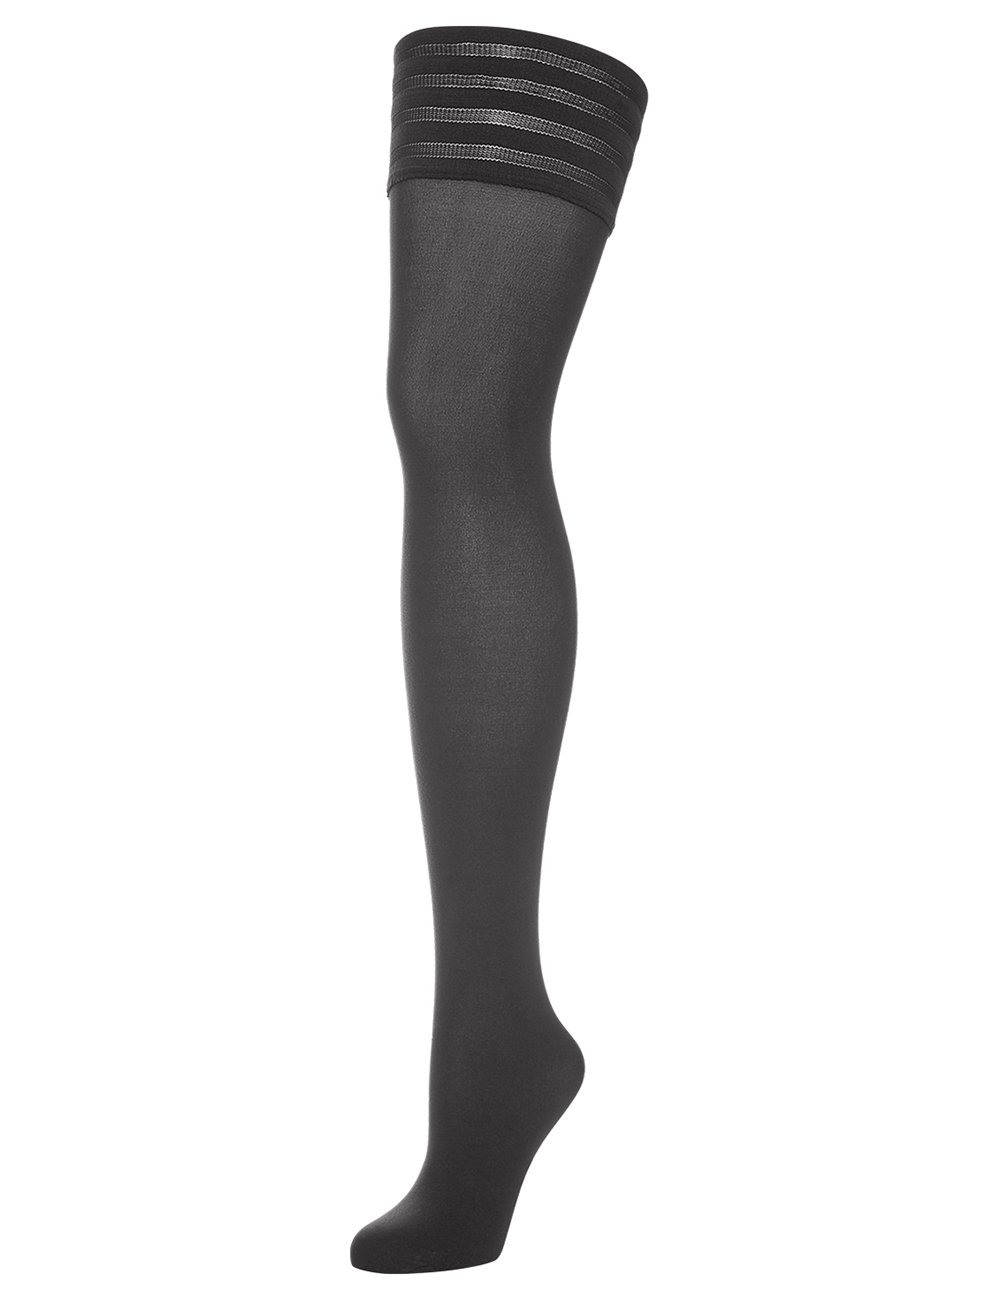 Wolford Velvet de Luxe Thigh Highs, Medium, Anthracite by Wolford